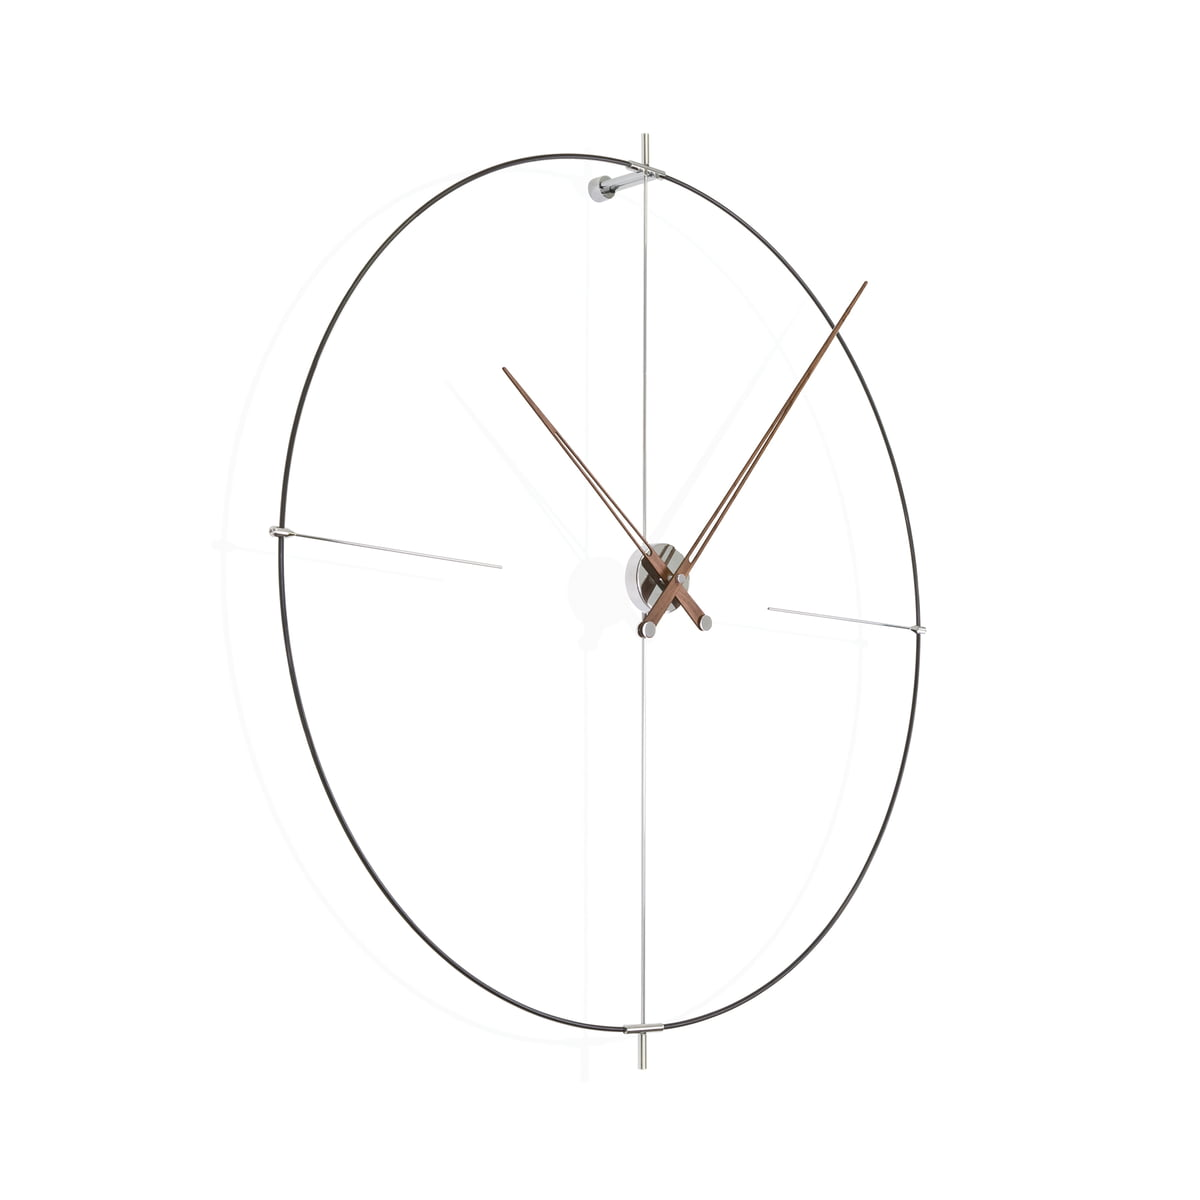 Bilbao wall clock by nomon in the shop bilbao wall clock by nomon in black made of walnut wood ccuart Choice Image